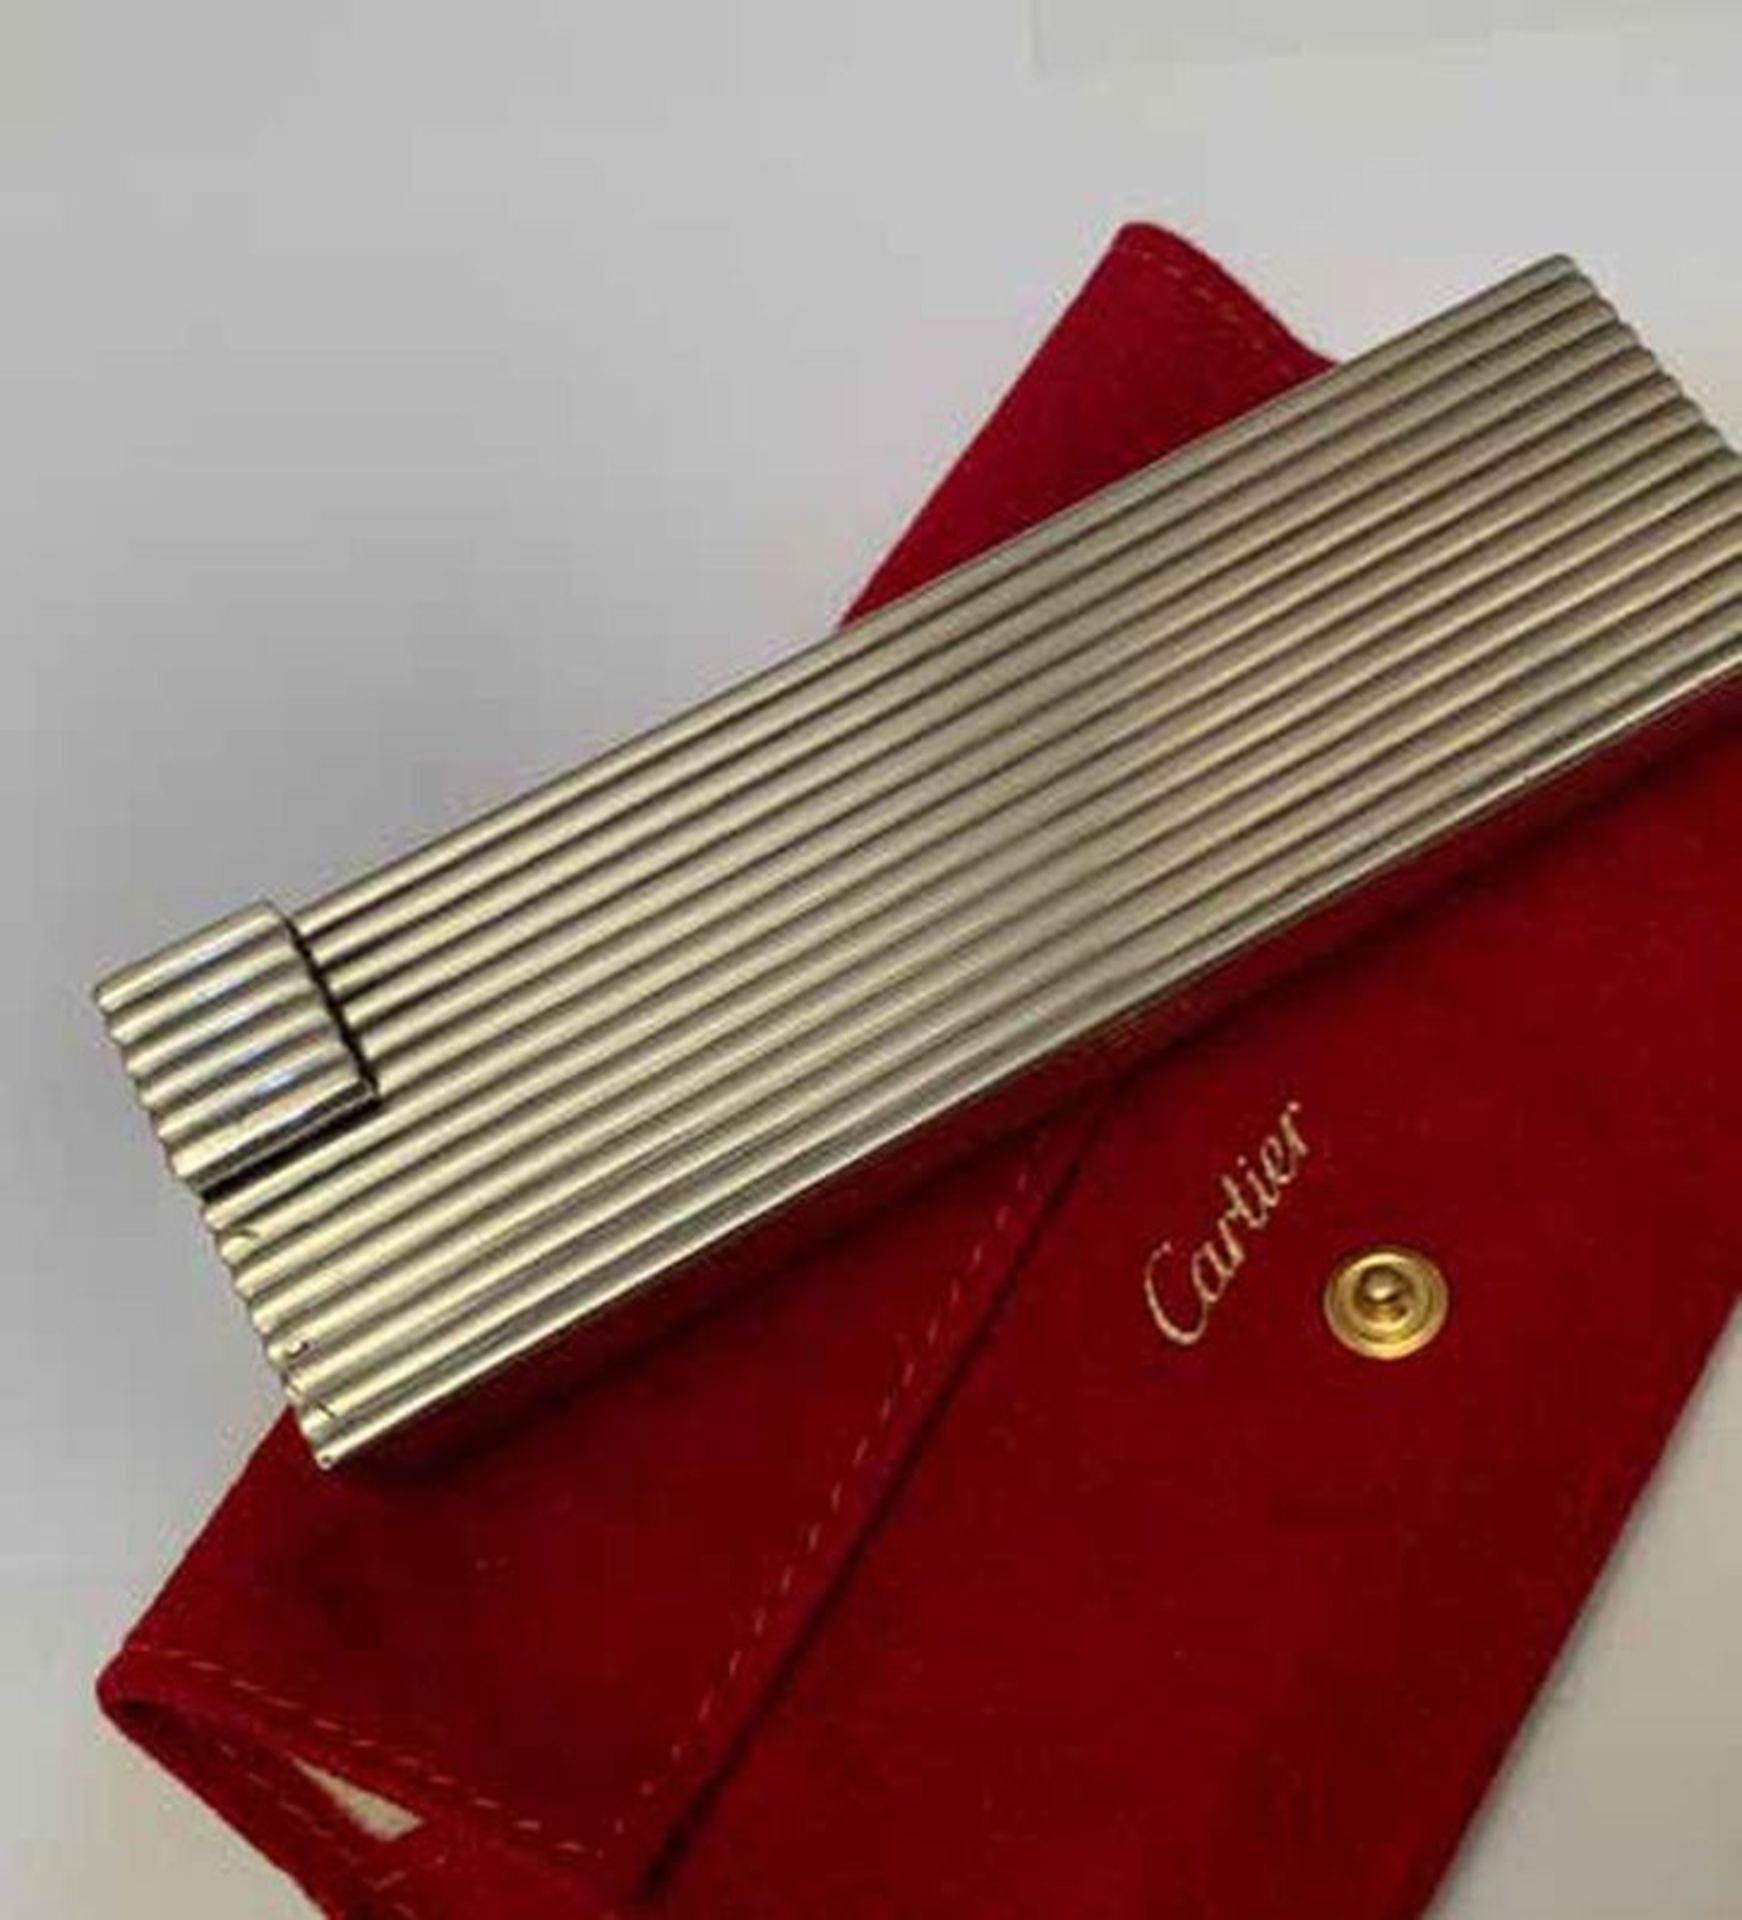 Reeded silver table lighter, Cartier - Signed Cartier Paris, French [...] - Bild 4 aus 4